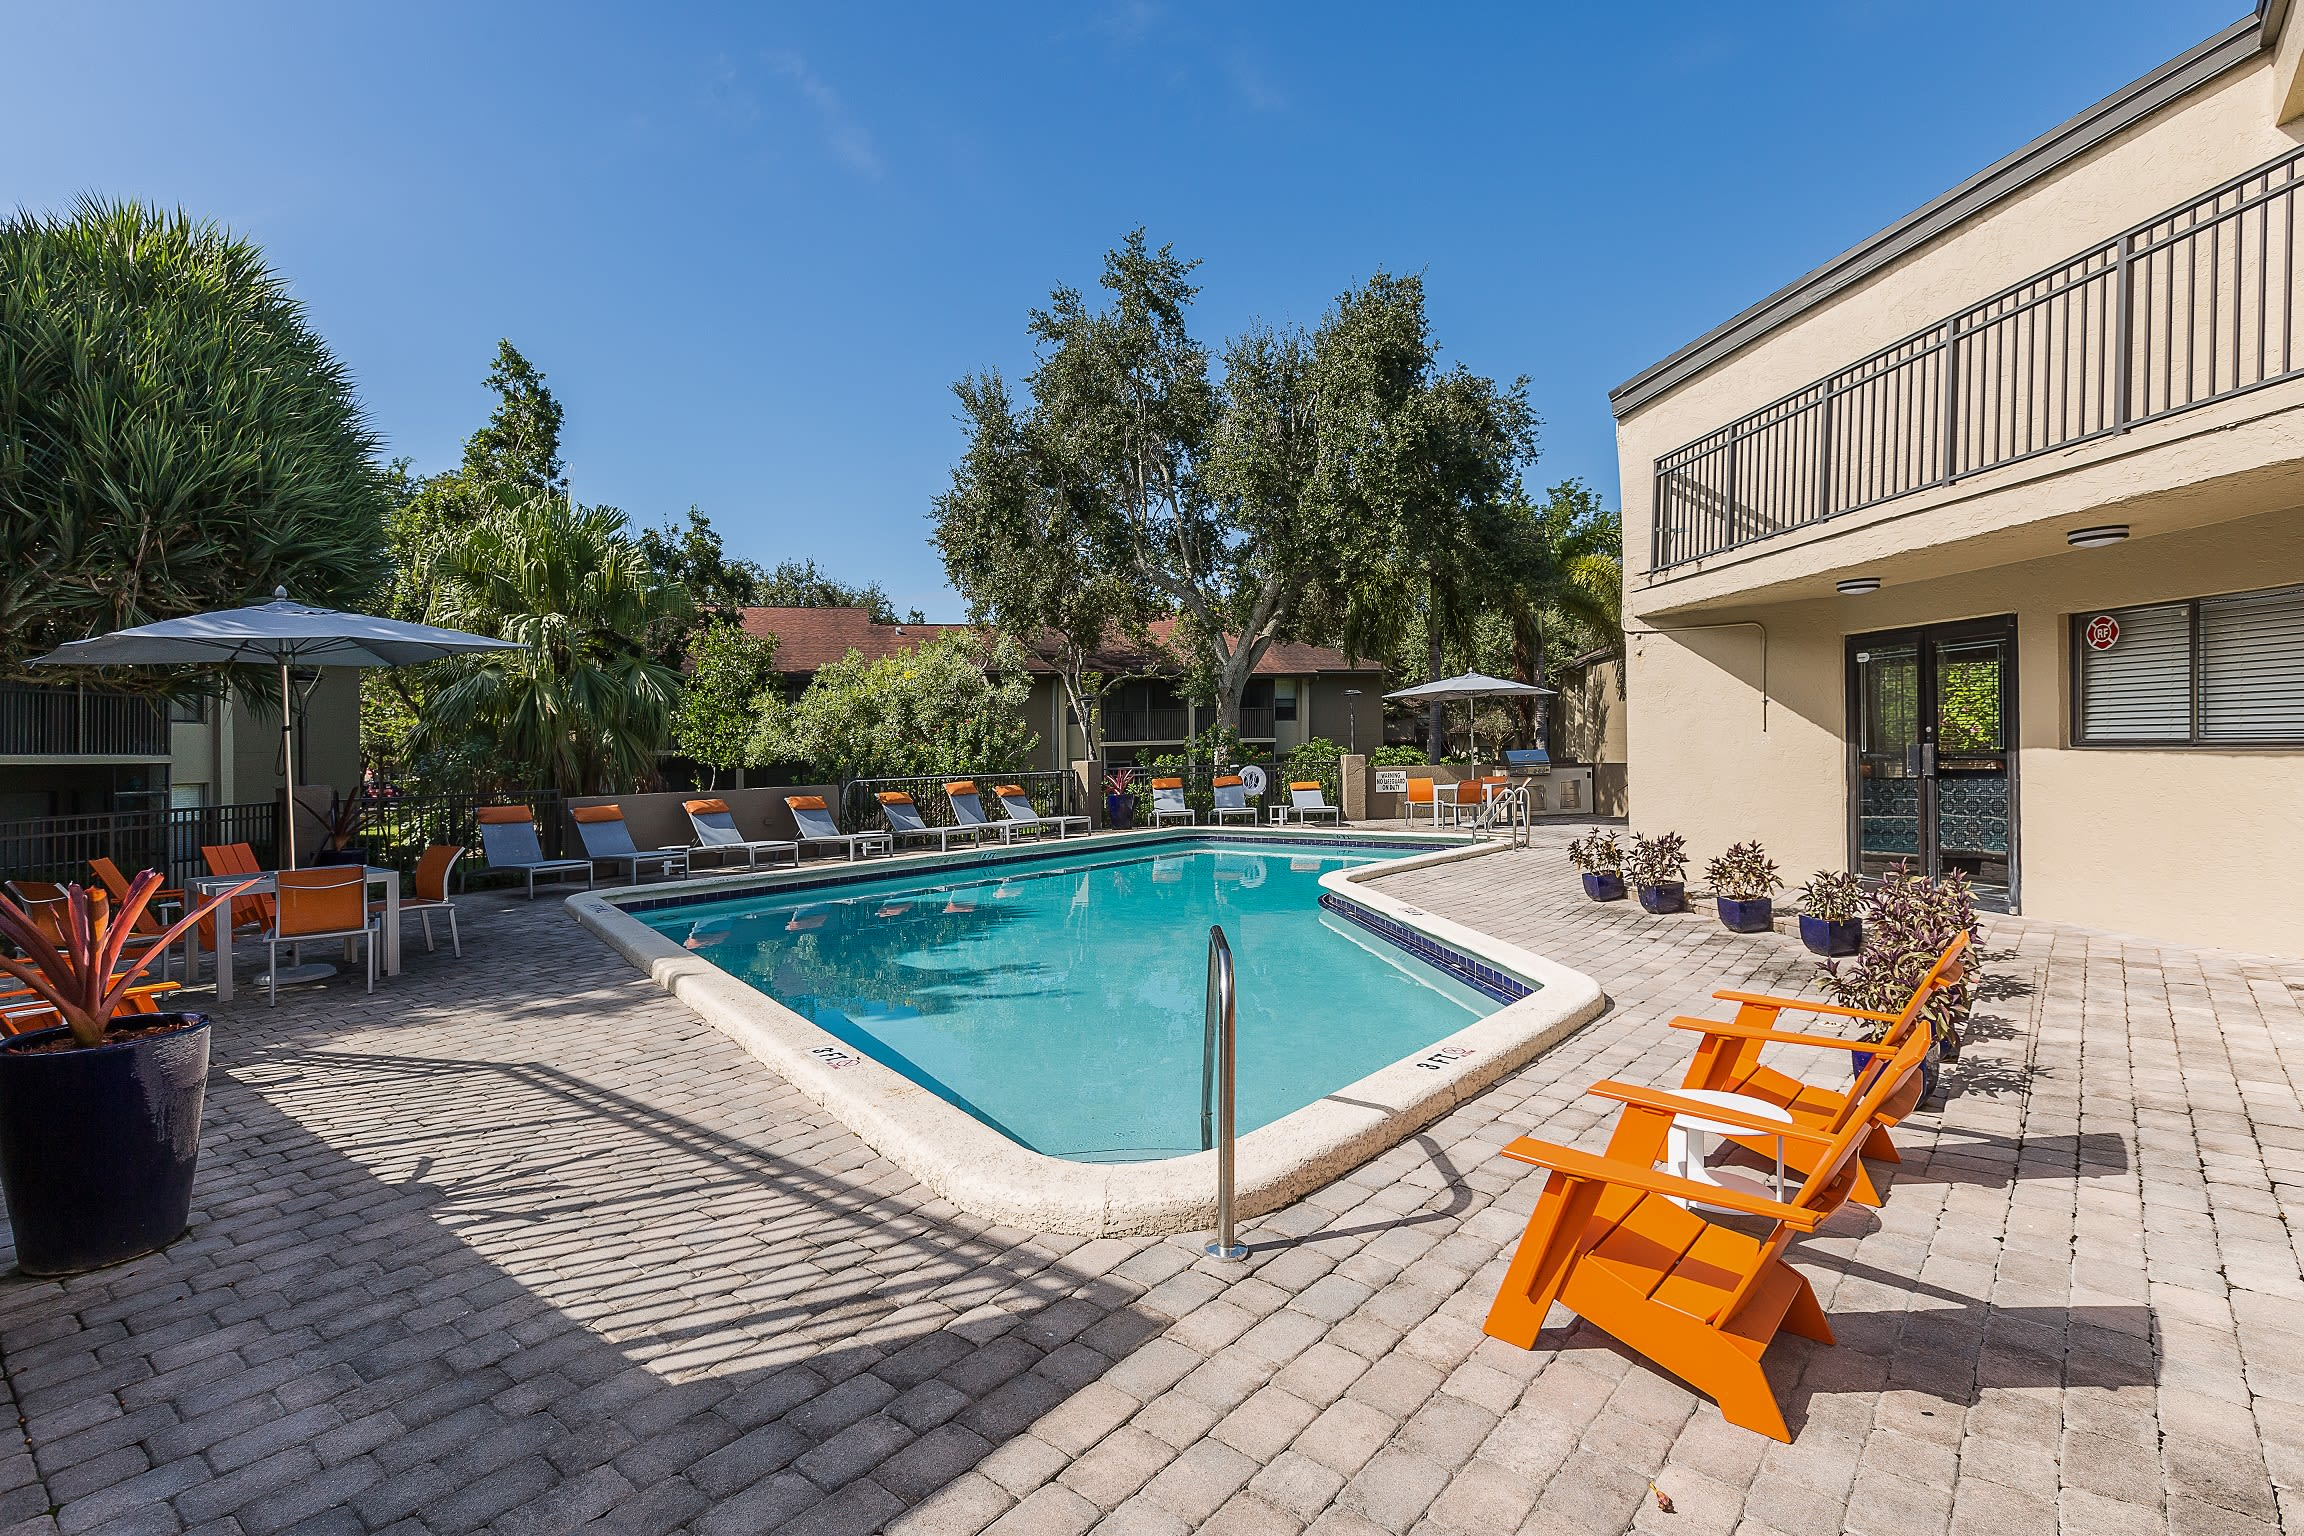 Swimming pool area at Siena Apartments in Plantation, Florida